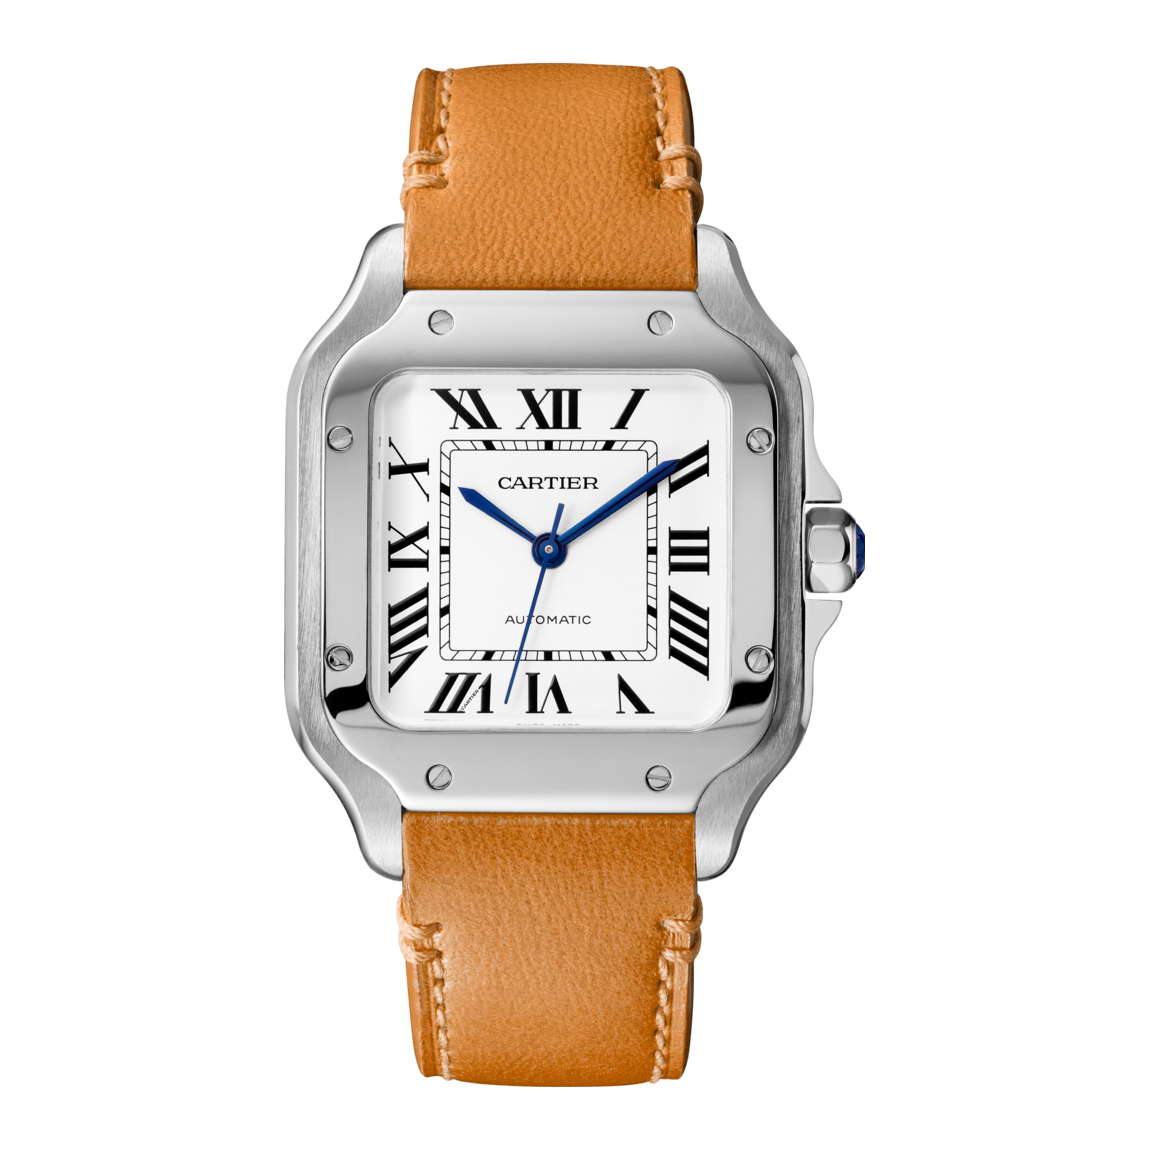 de galbee santos watch authentic watches cartier